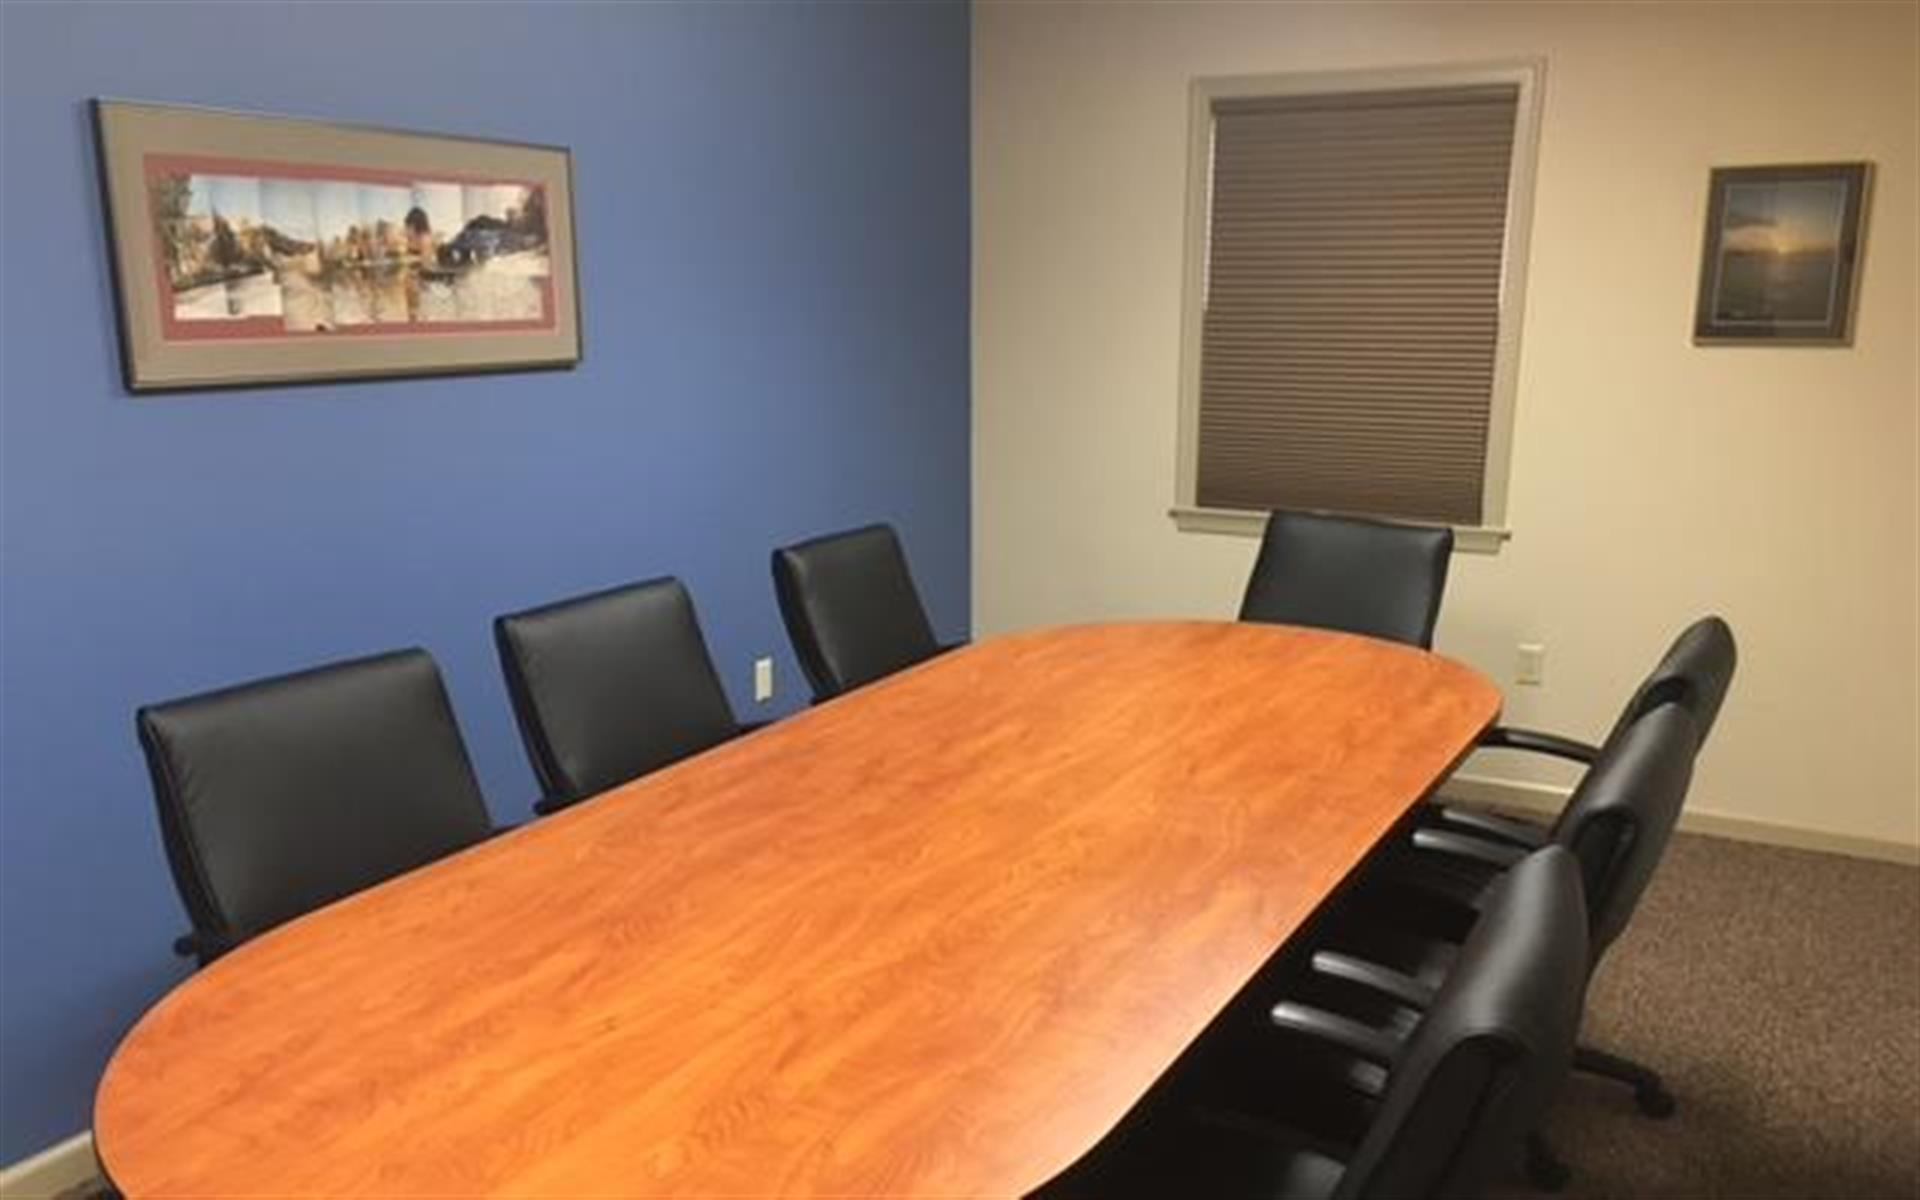 Mid-Point Office Exchange - Conference Room 8-10